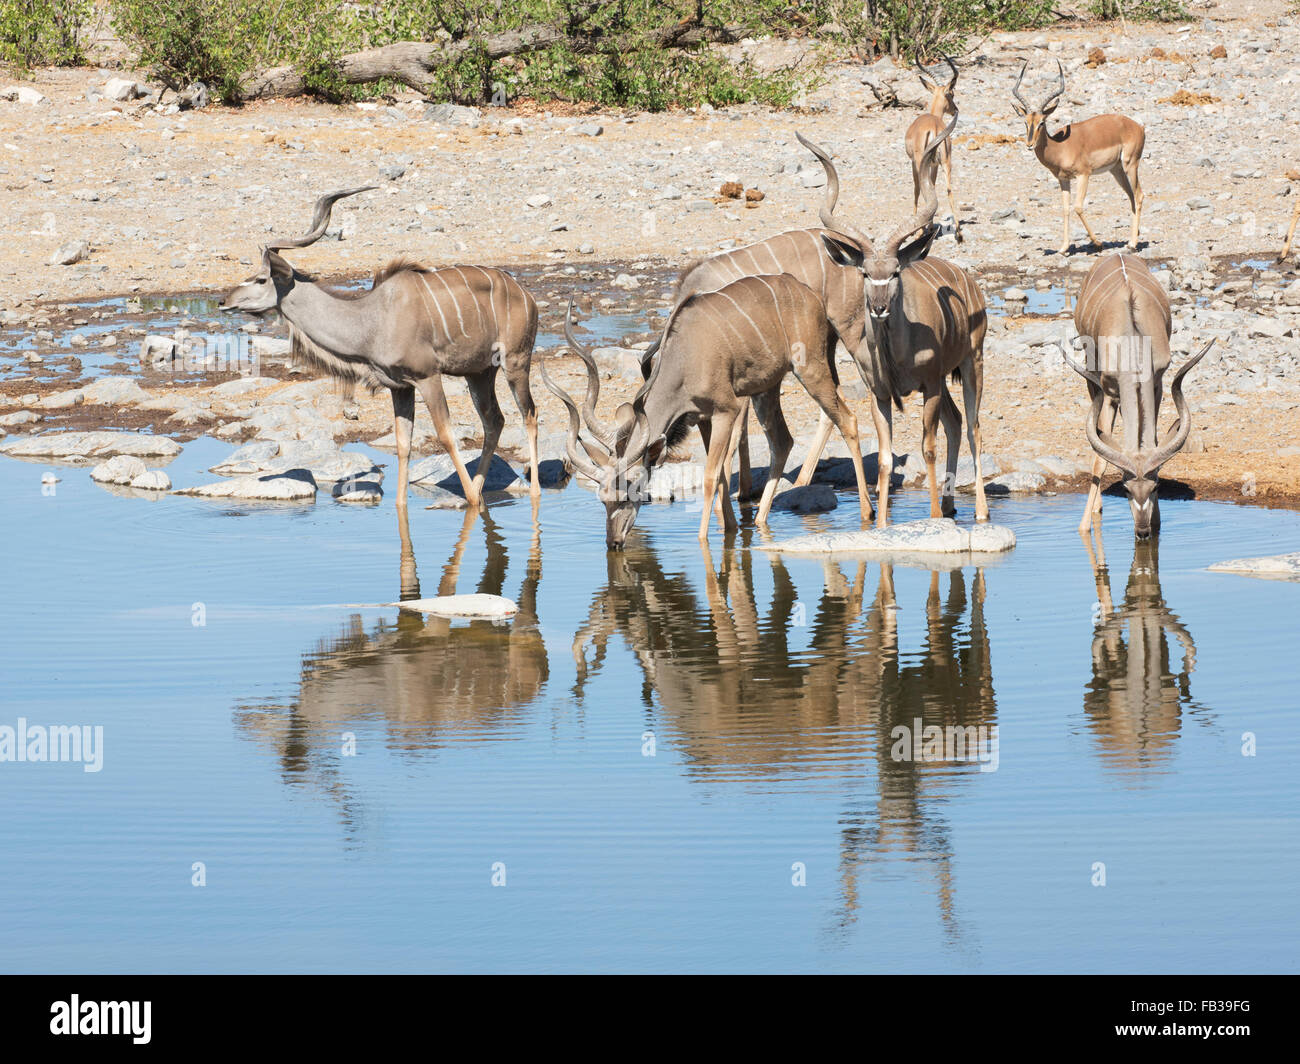 Greater Kudu stags and black-faced impala arriving at waterhole in Etosha National Park, Namibia, to drink - Stock Image